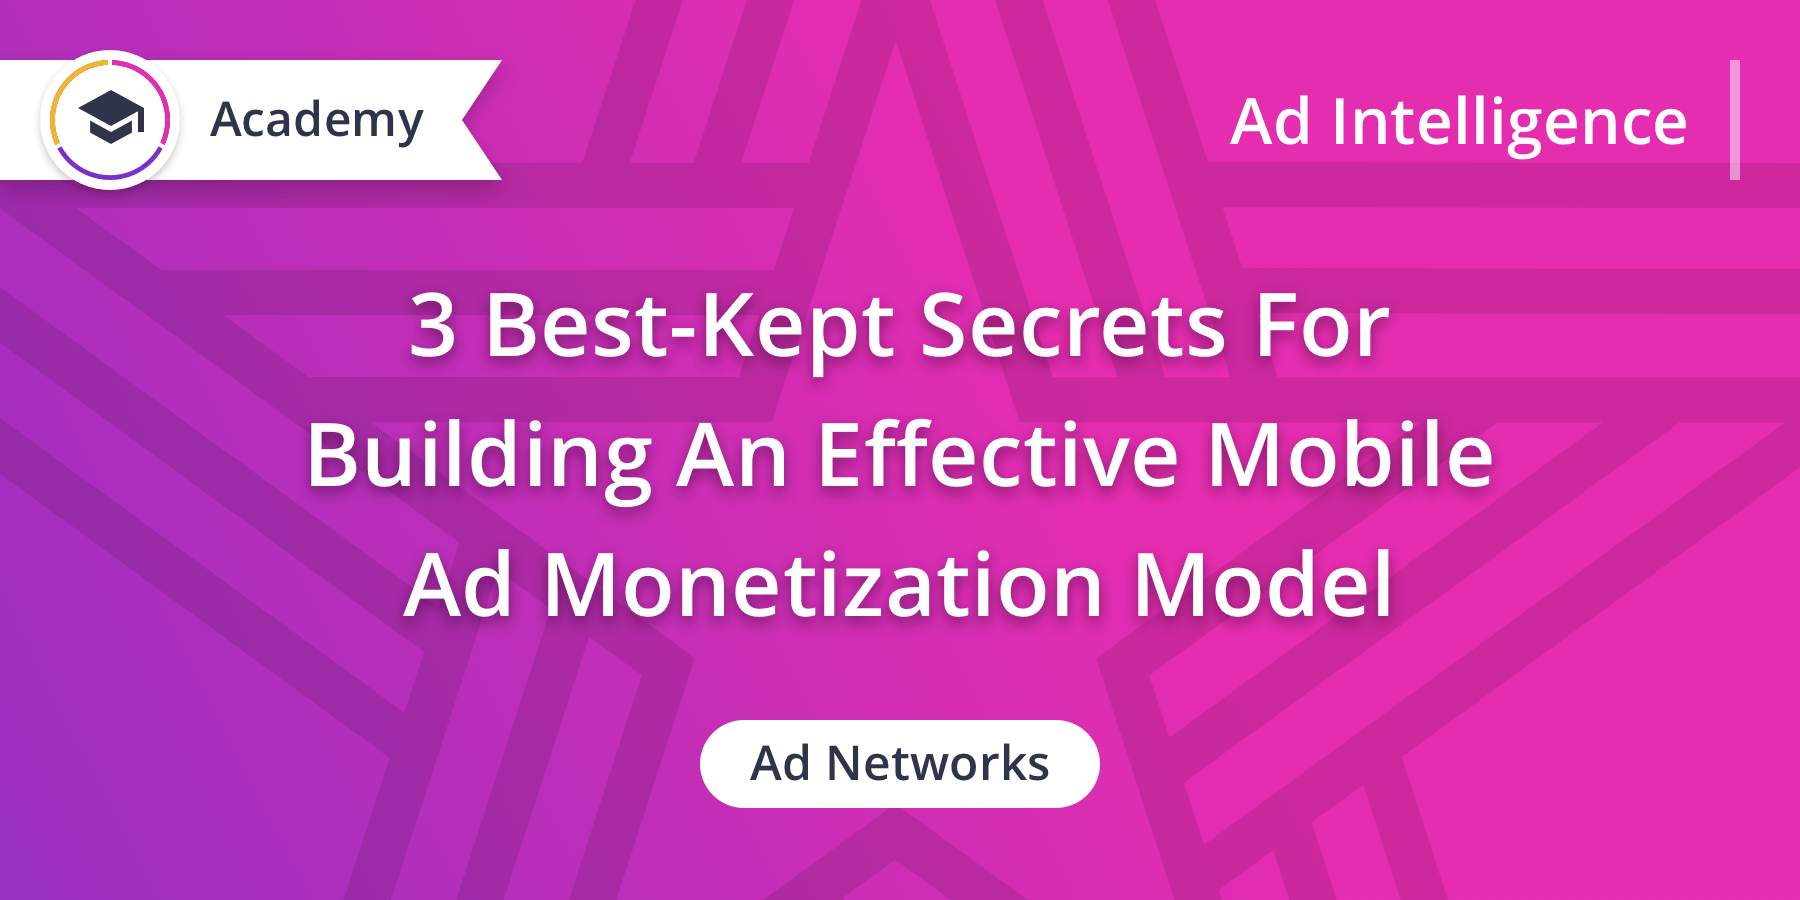 3 Best-Kept Secrets For Building An Effective Mobile Ad Monetization Model